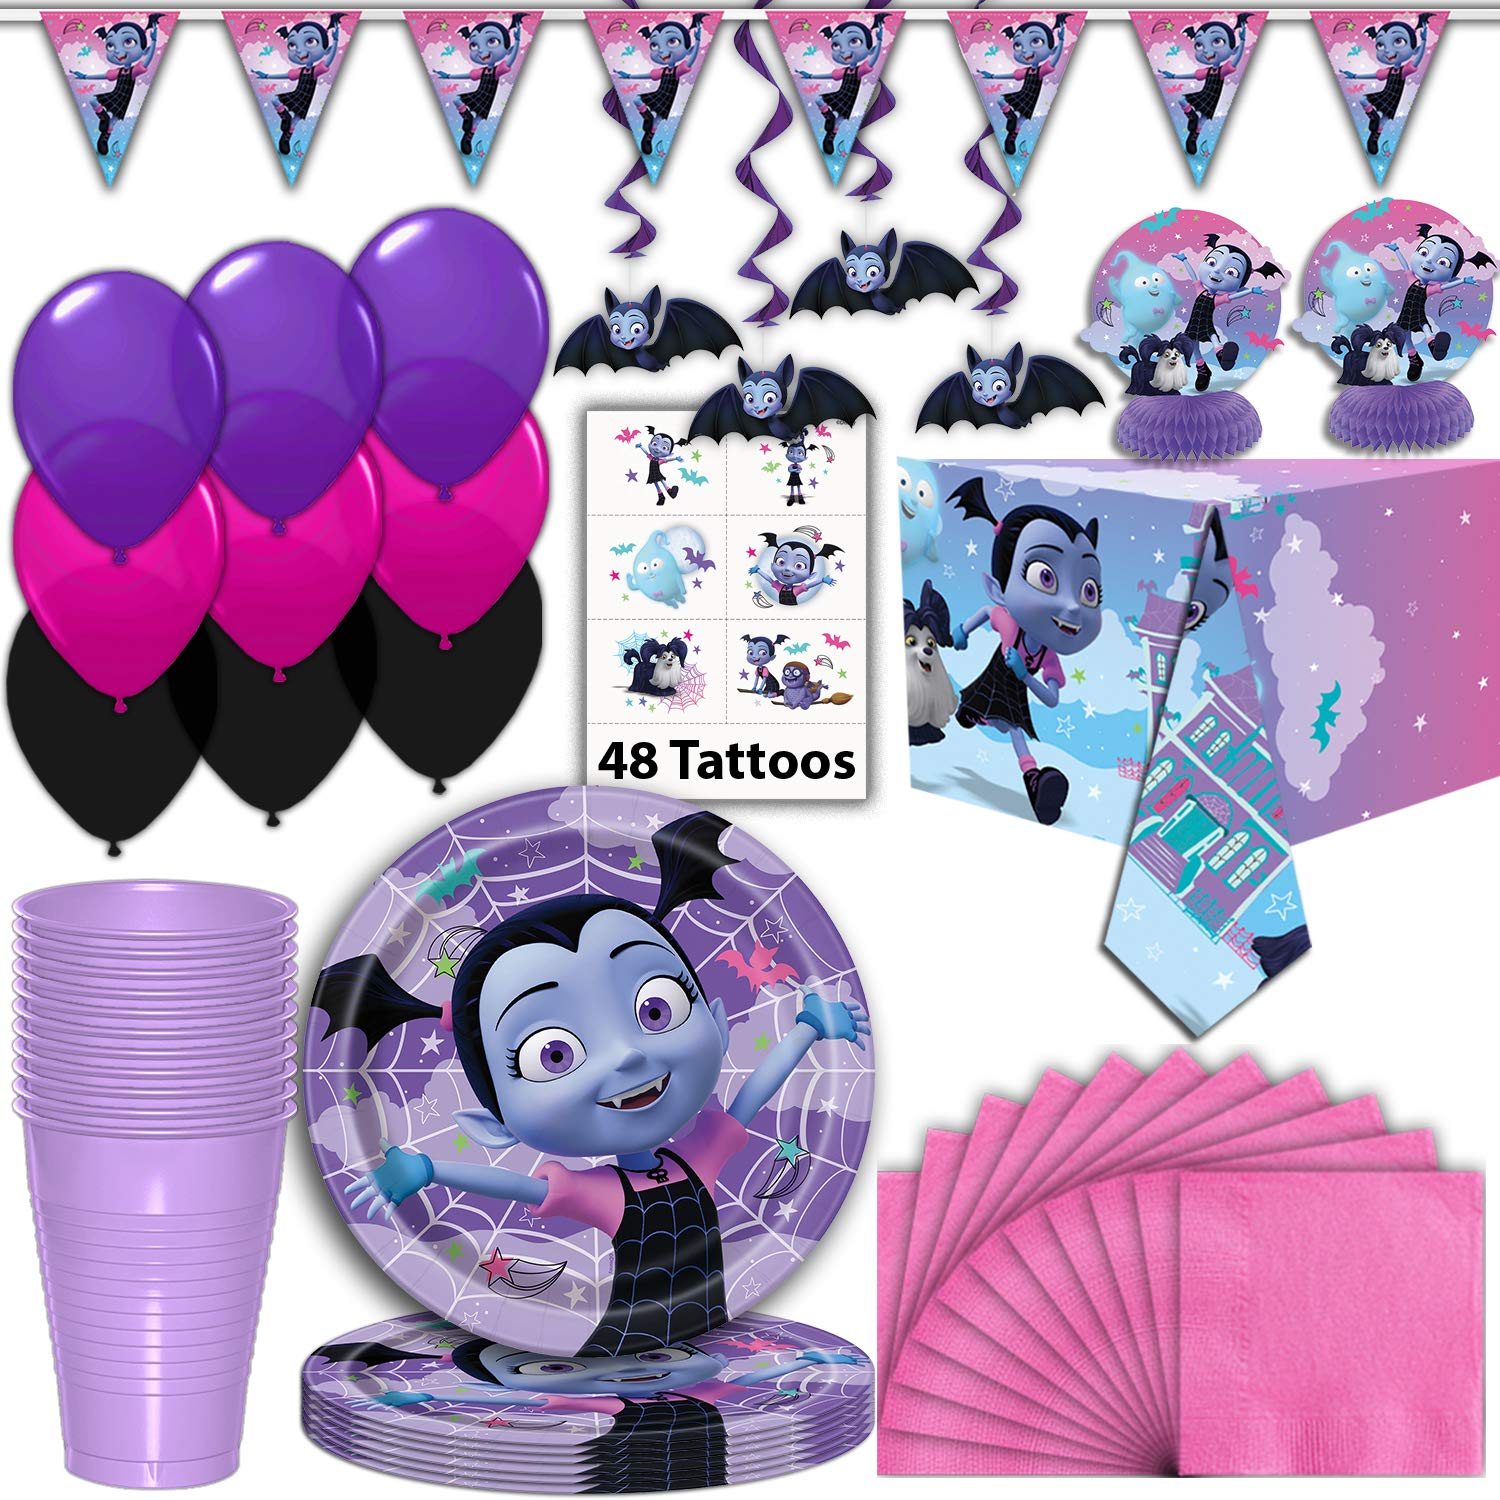 Vampirina Party Supplies for 16 - Plates, Napkins, Cups, Tablecloth, Tattoos, Banner, Hanging Swirls, Centerpieces, Balloons - Disney Junior Disposable Birthday Decorations, Favors, and Tableware